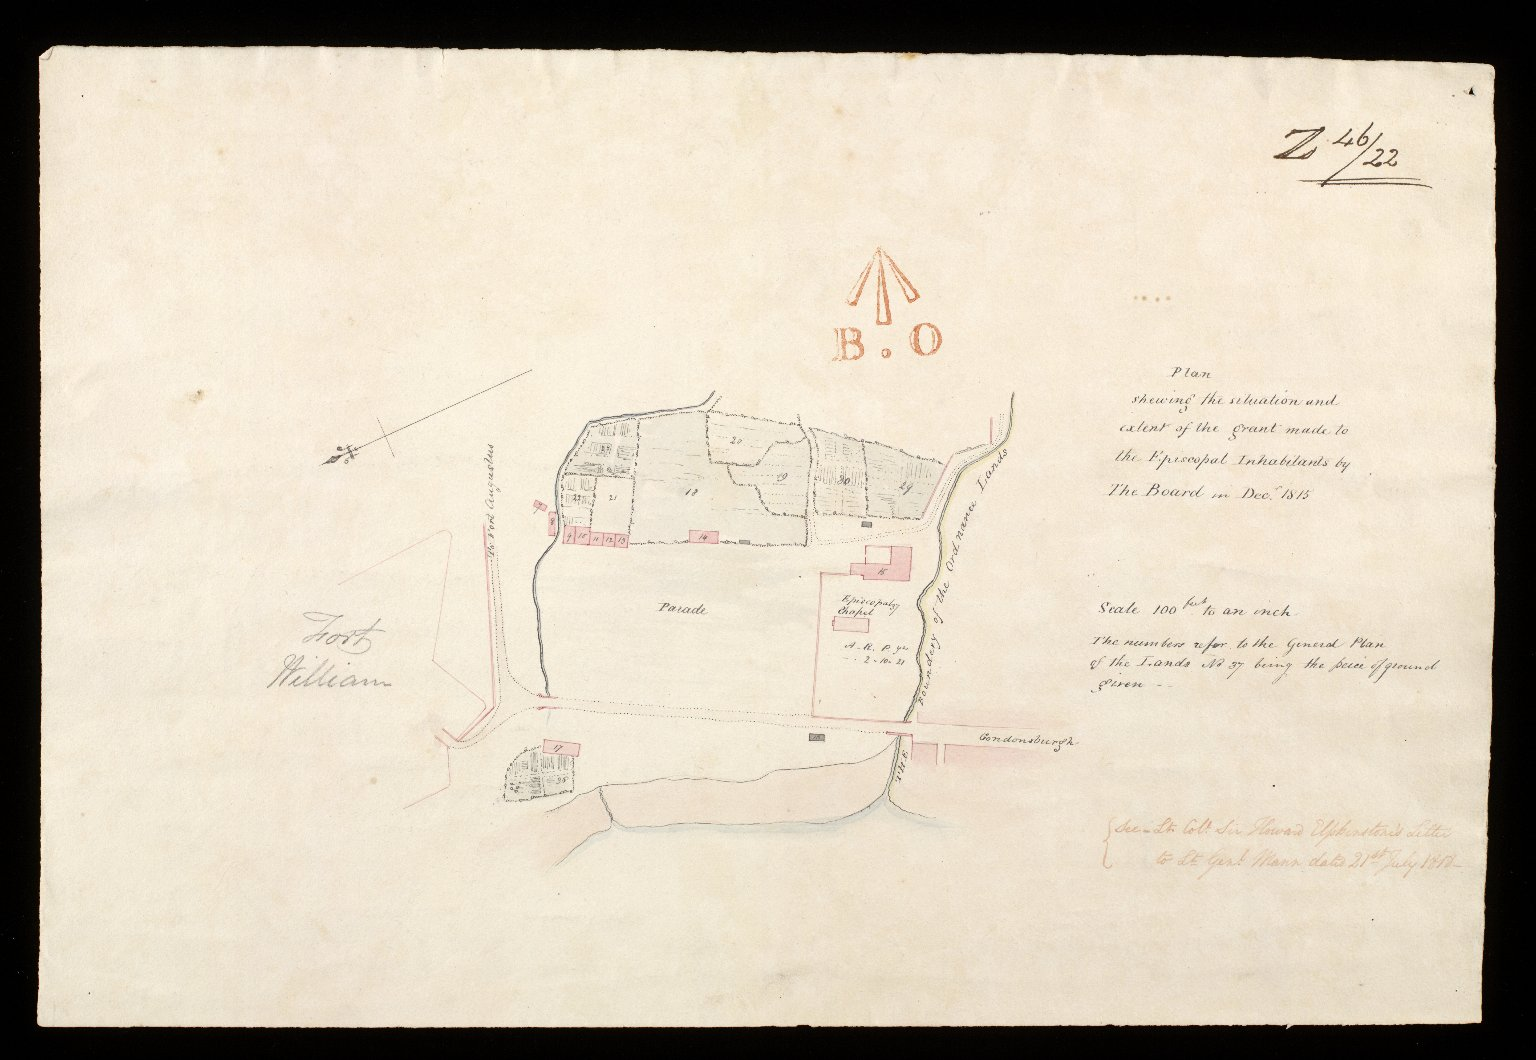 Fort William : plan shewing the situation and extent of the grant made to the Episcopal inhabitants by the Board in Decr. 1815 [1 of 2]